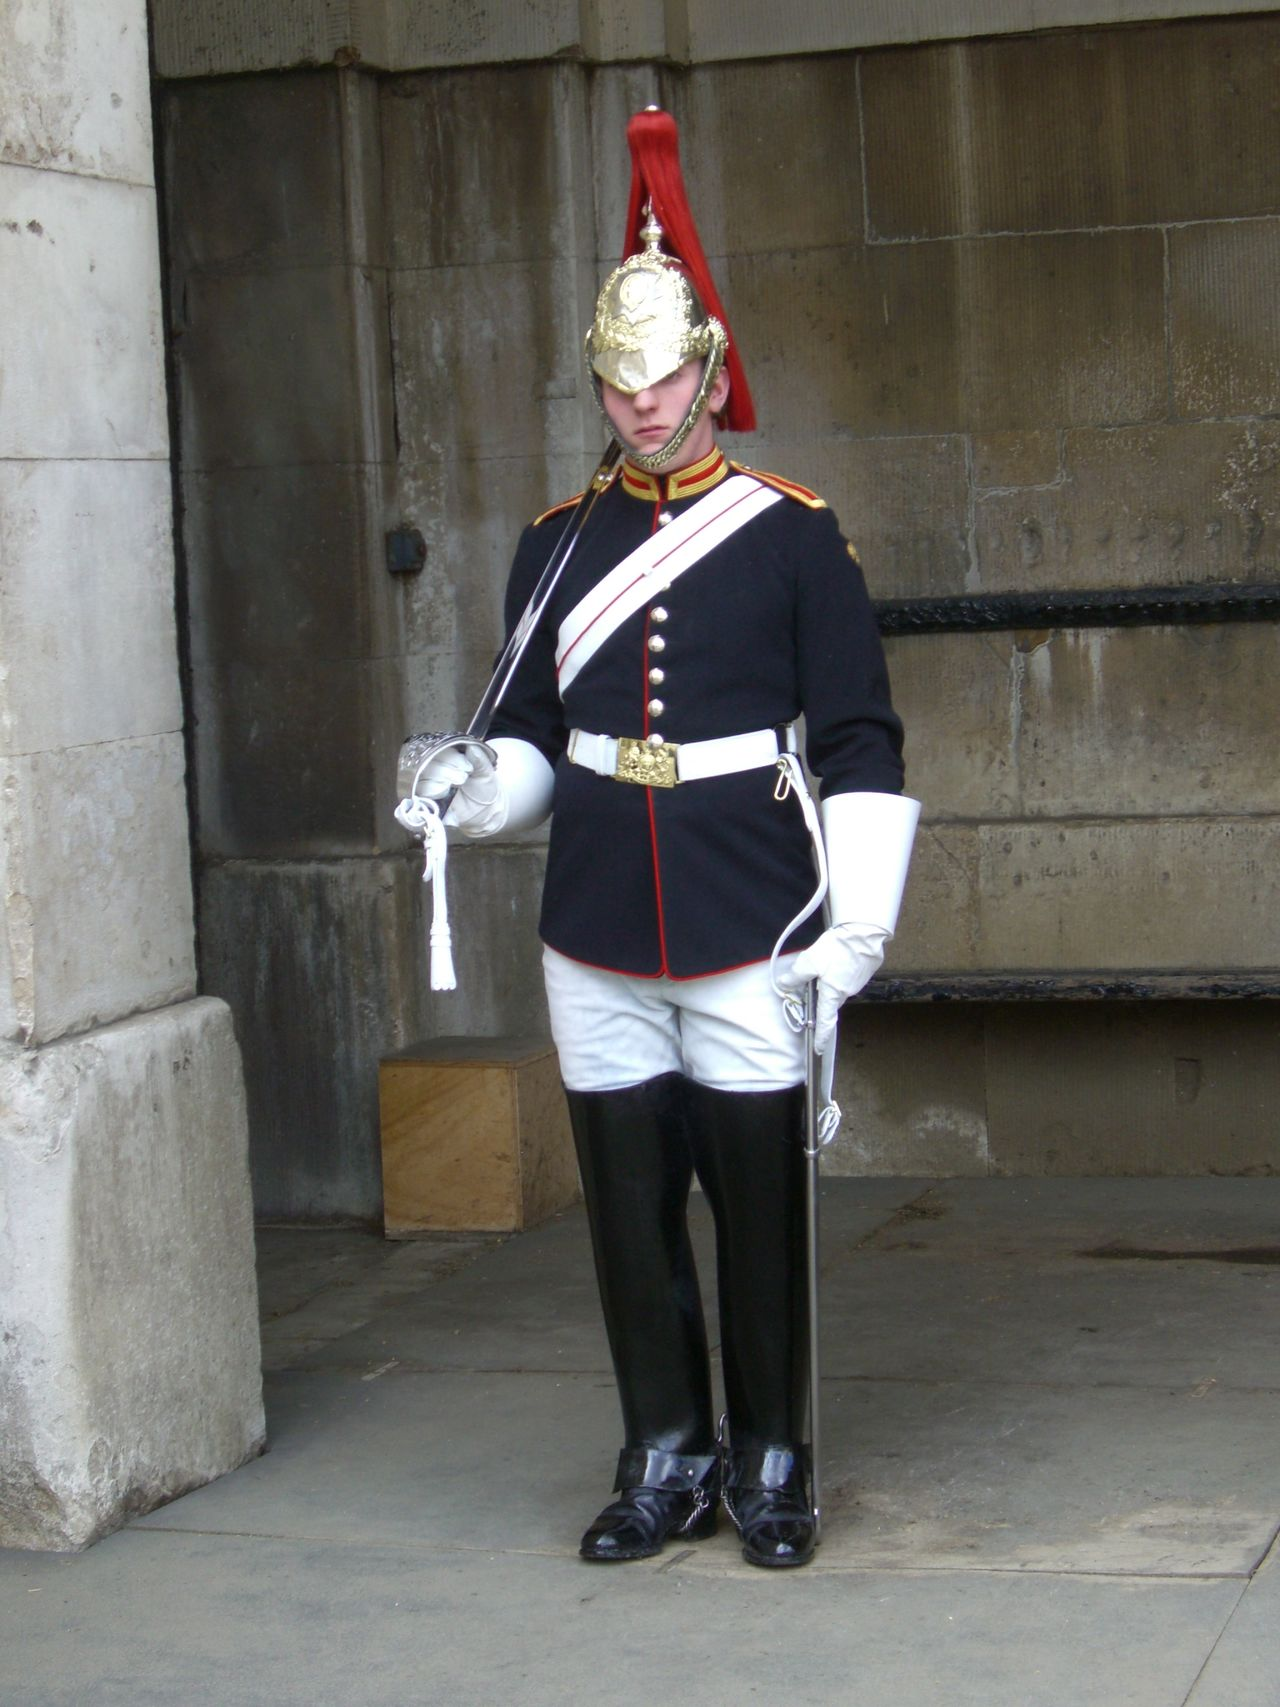 Household Cavalry Cavalry Cavalry Soldier Composition Famous Place Full Frame Full Length GB Guard Helmet London No Incidental People One Man Only Outdoor Photography Soldier Standing Sword Tourist Attraction  Tourist Destination Traditional Uk Uniform